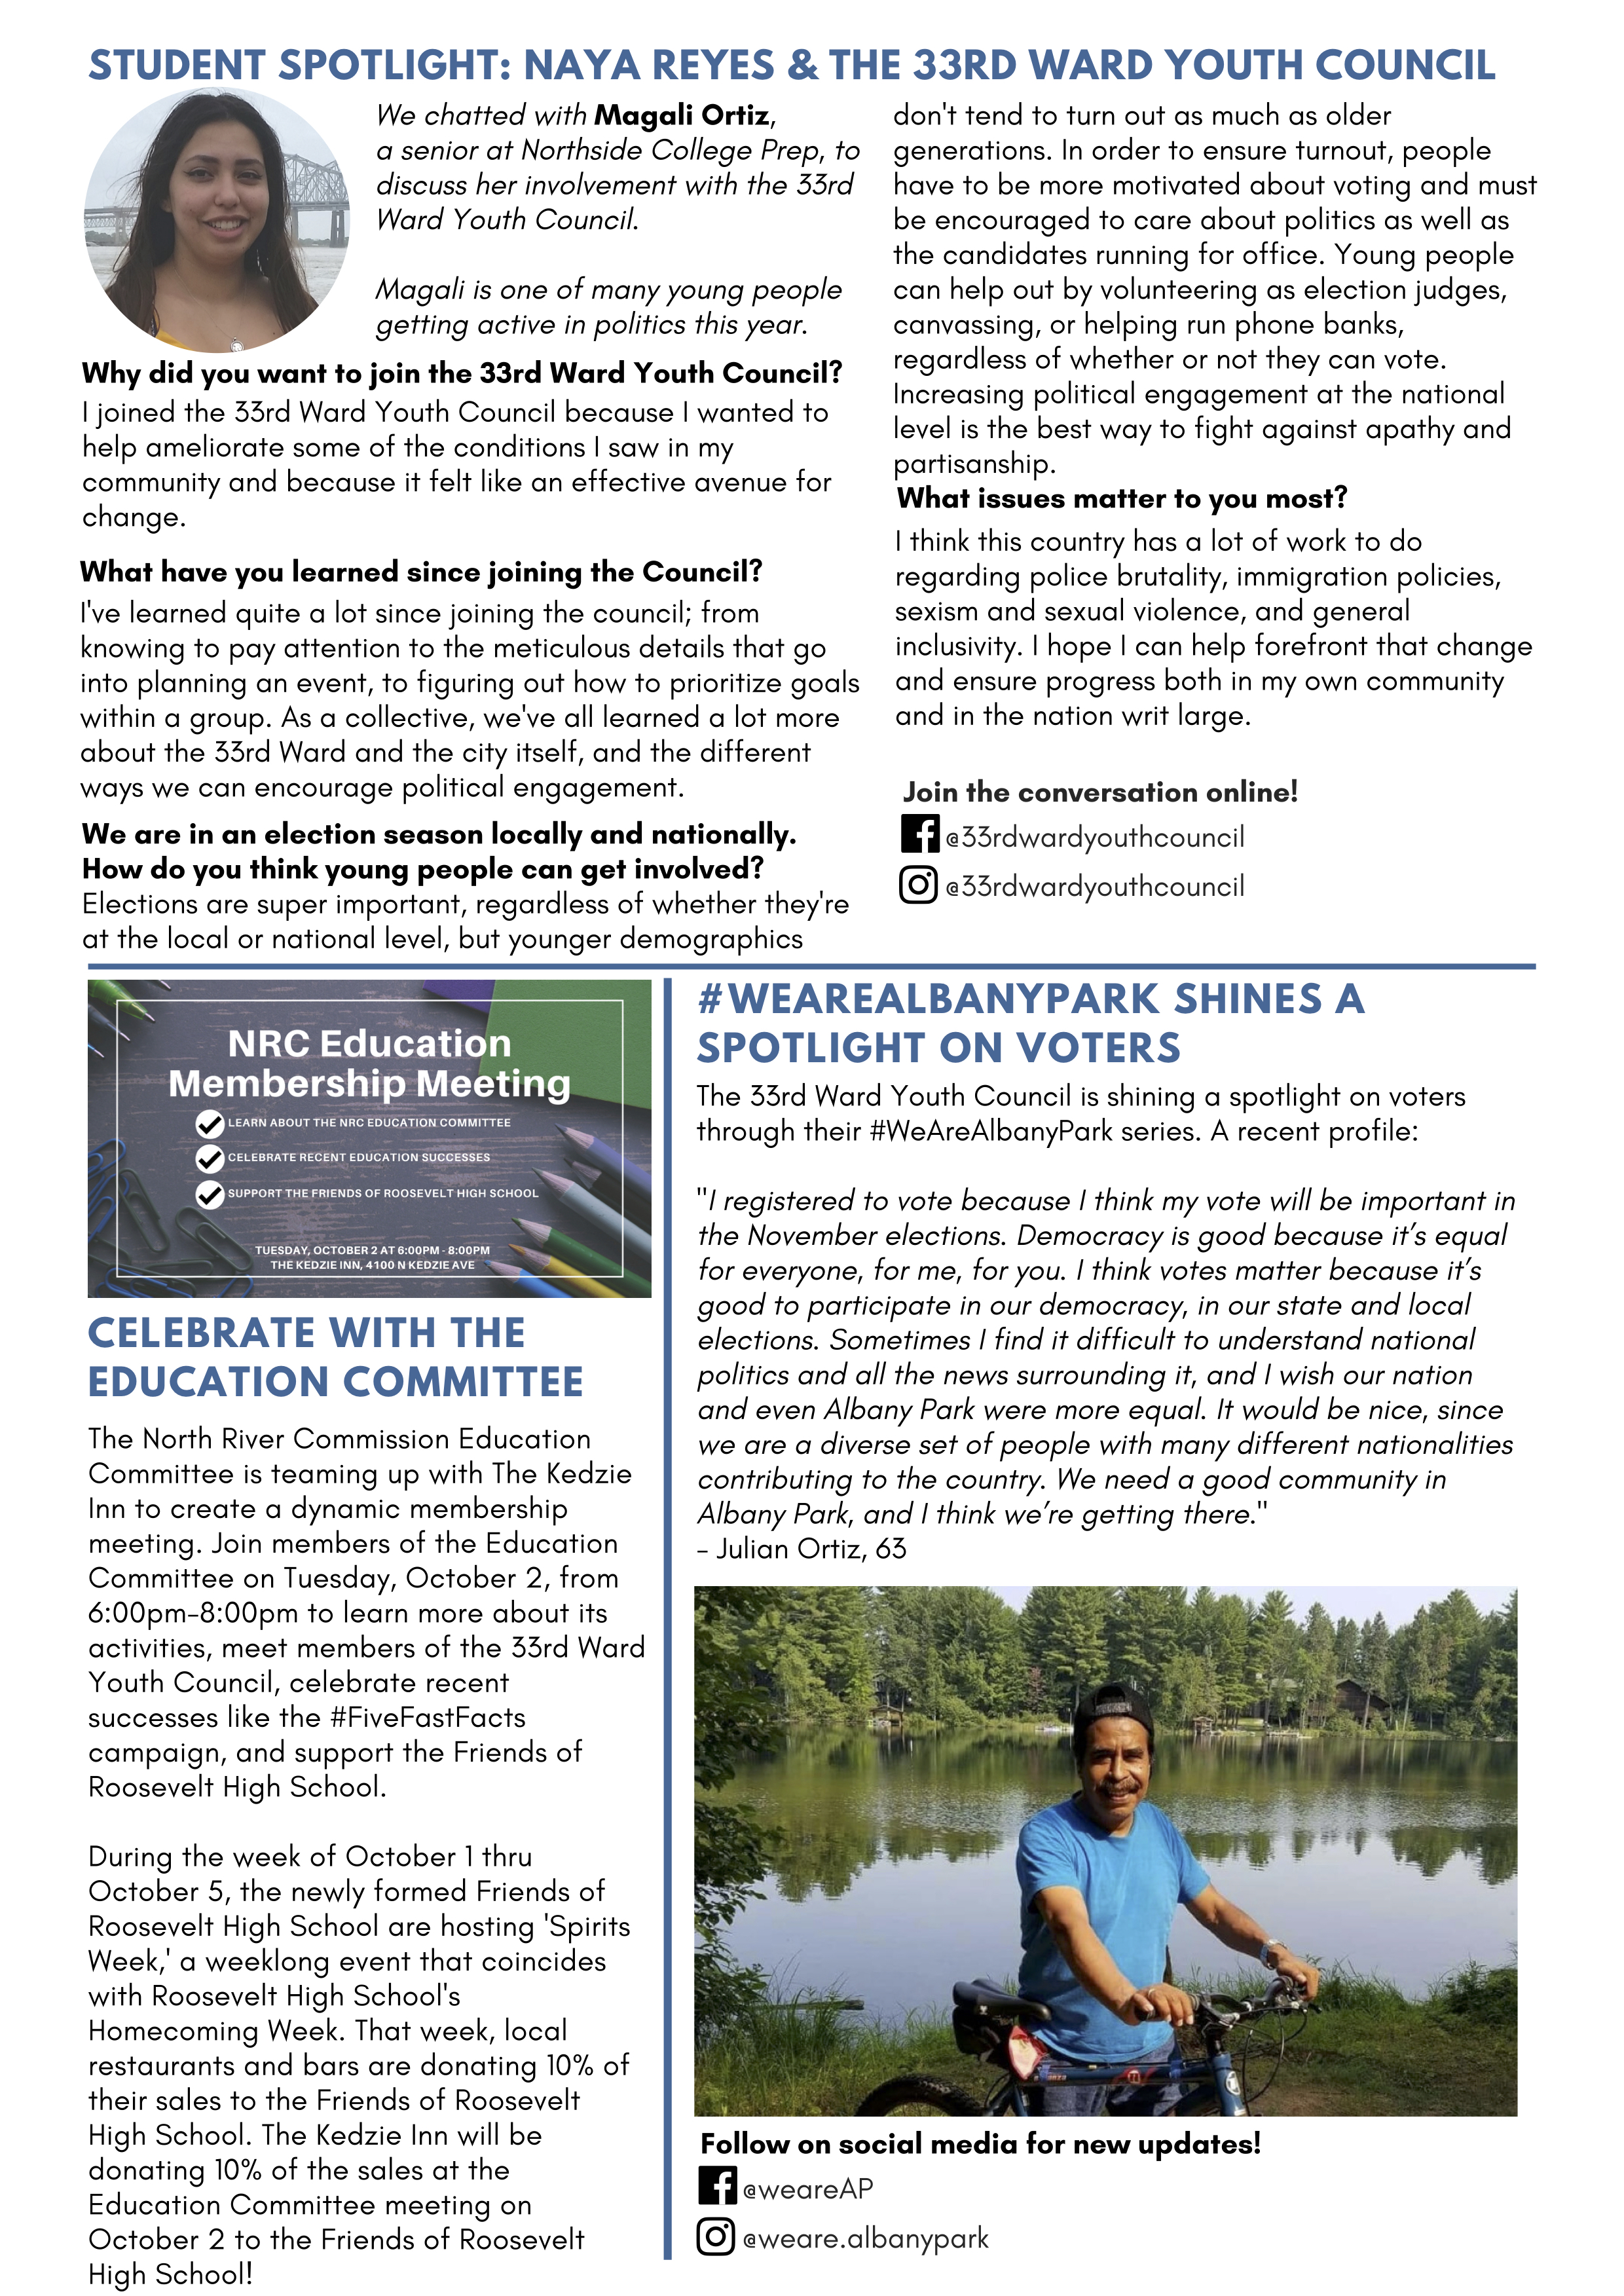 NRC Education Newsletter - Sept 2018 pg 2.jpg